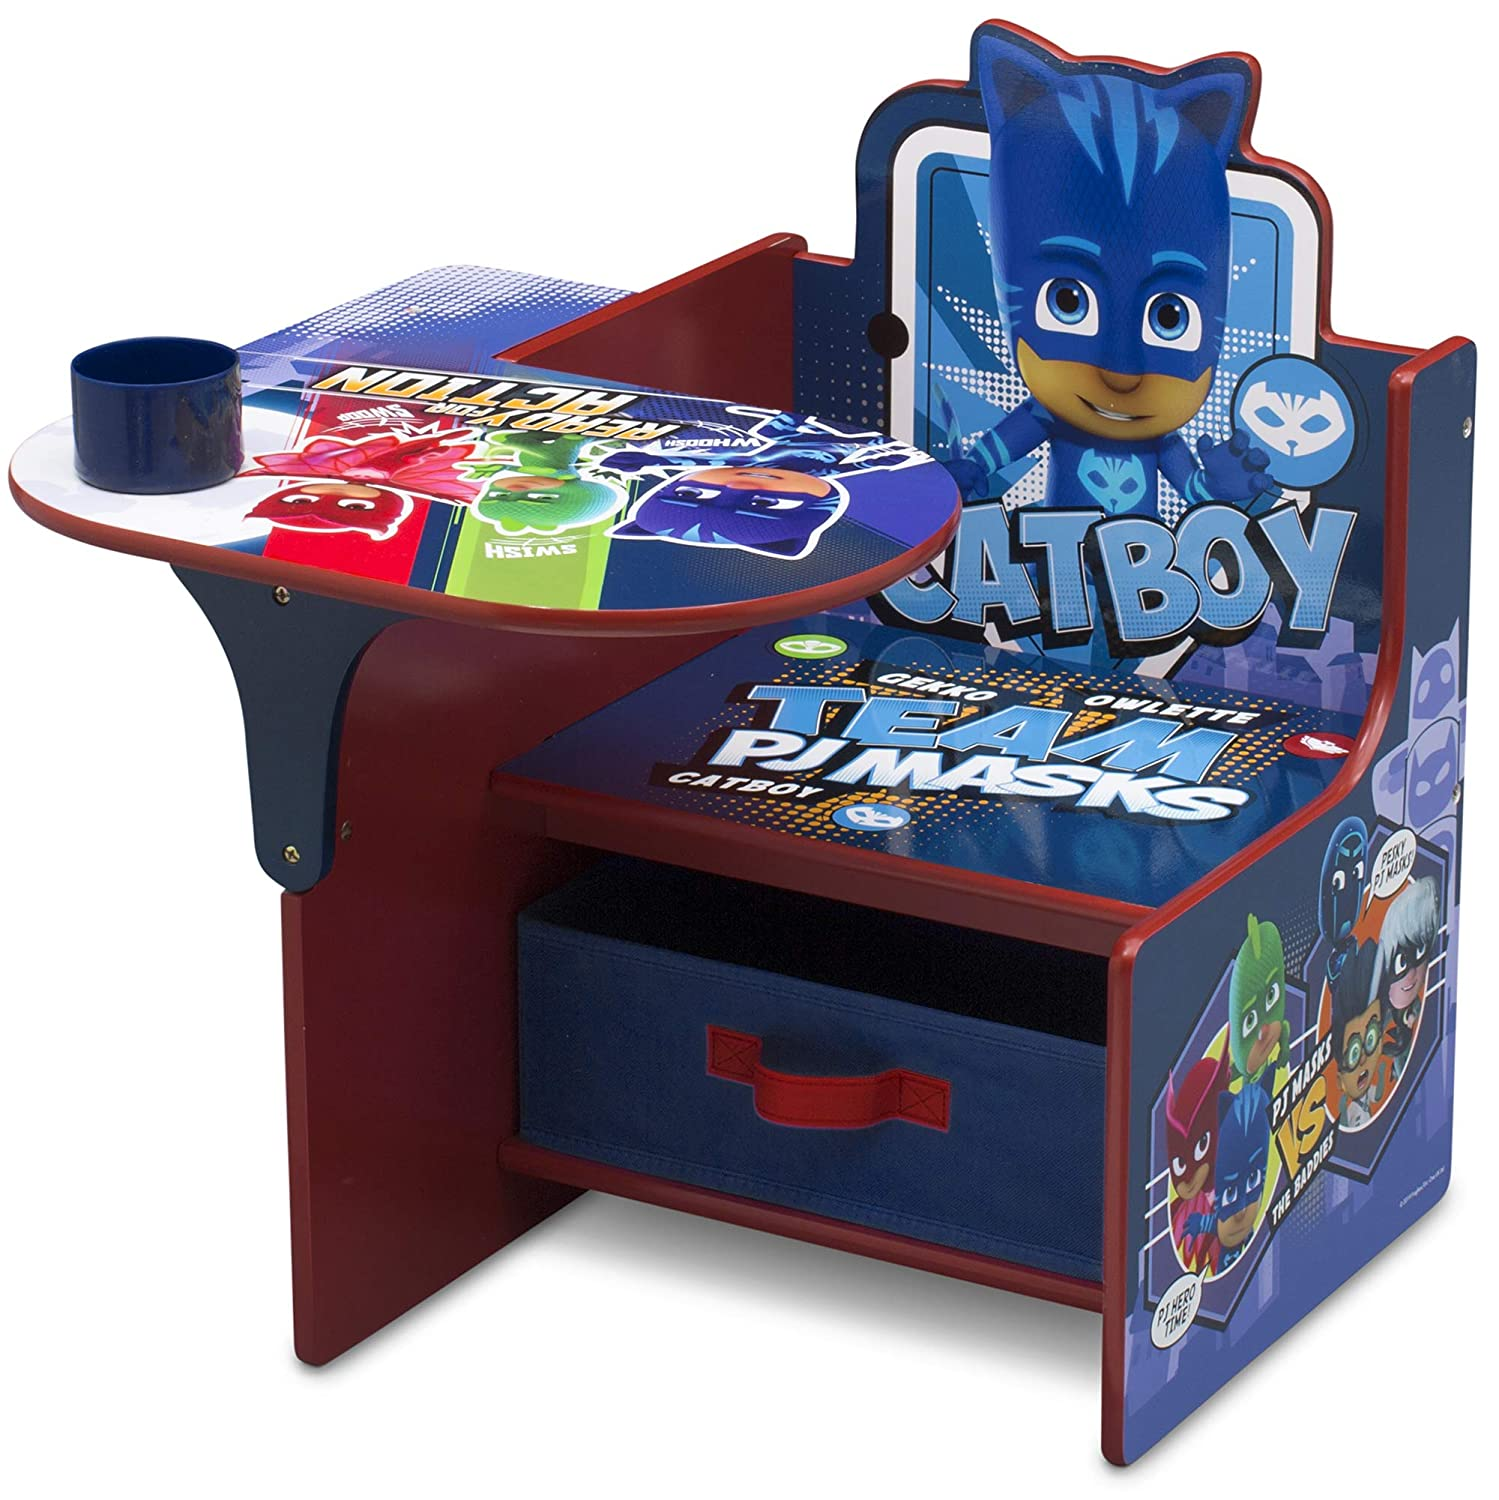 Astonishing Delta Children Tc83676Pj Chair Desk With Storage Bin Pj Masks Blue Character Pdpeps Interior Chair Design Pdpepsorg